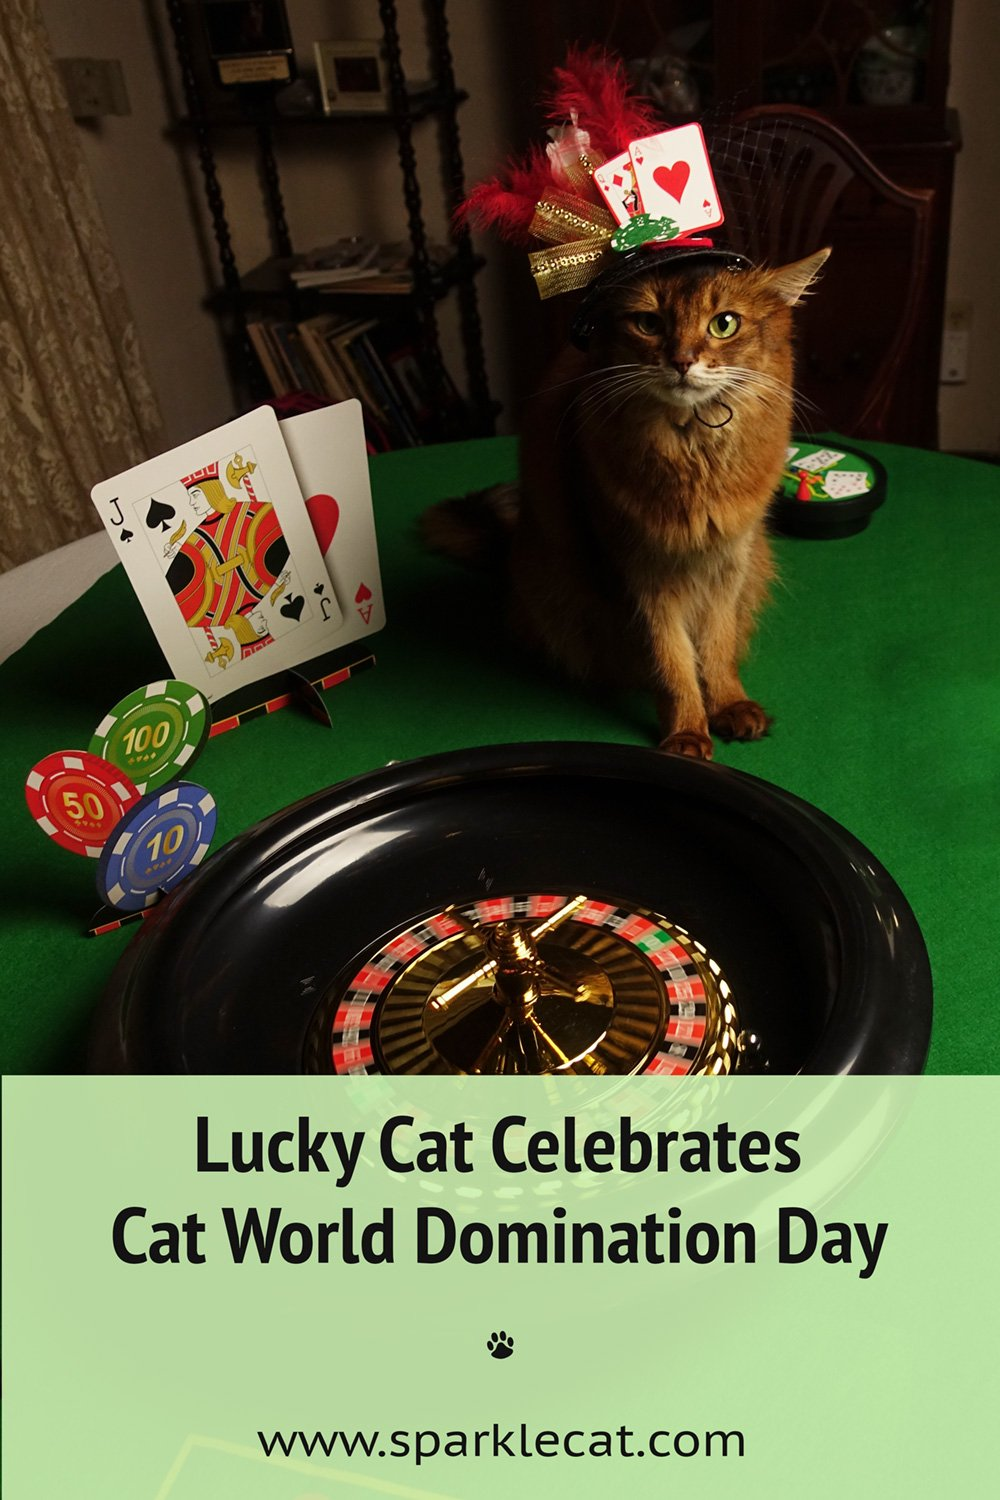 Cat World Domination Day Casino Party and Giveaway!